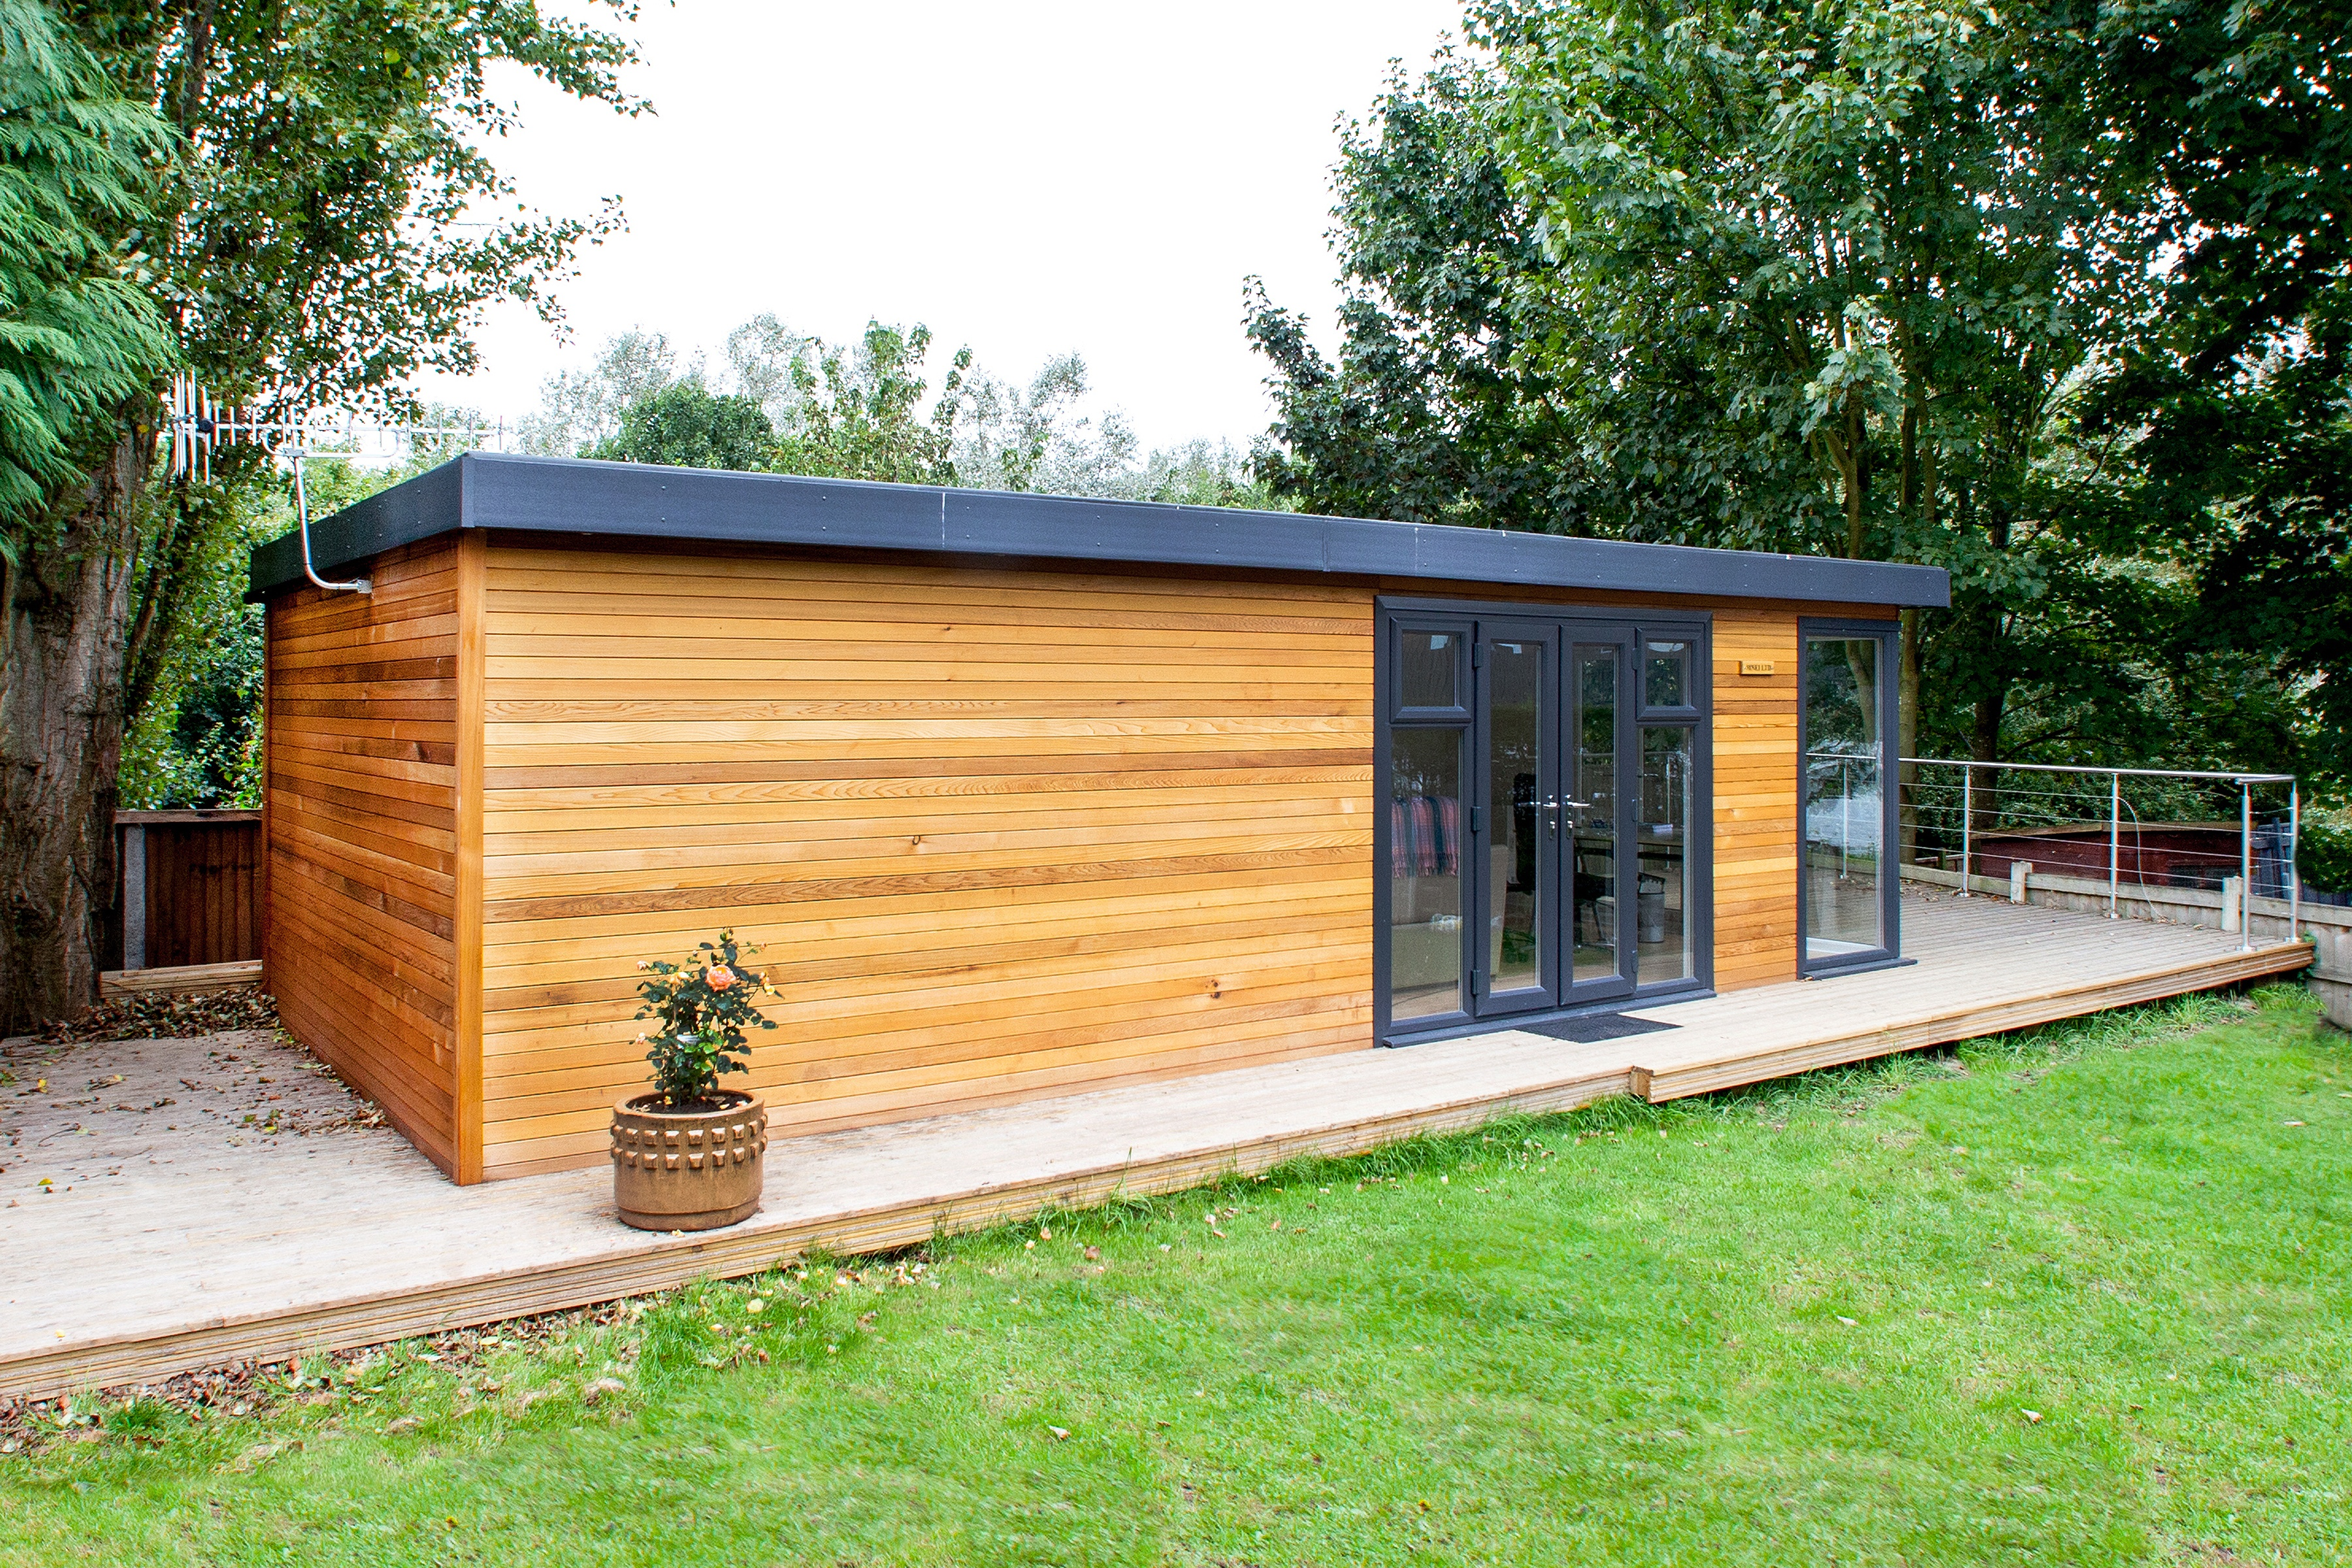 Planning A Garden Room For A Listed Property - Can I Still ...